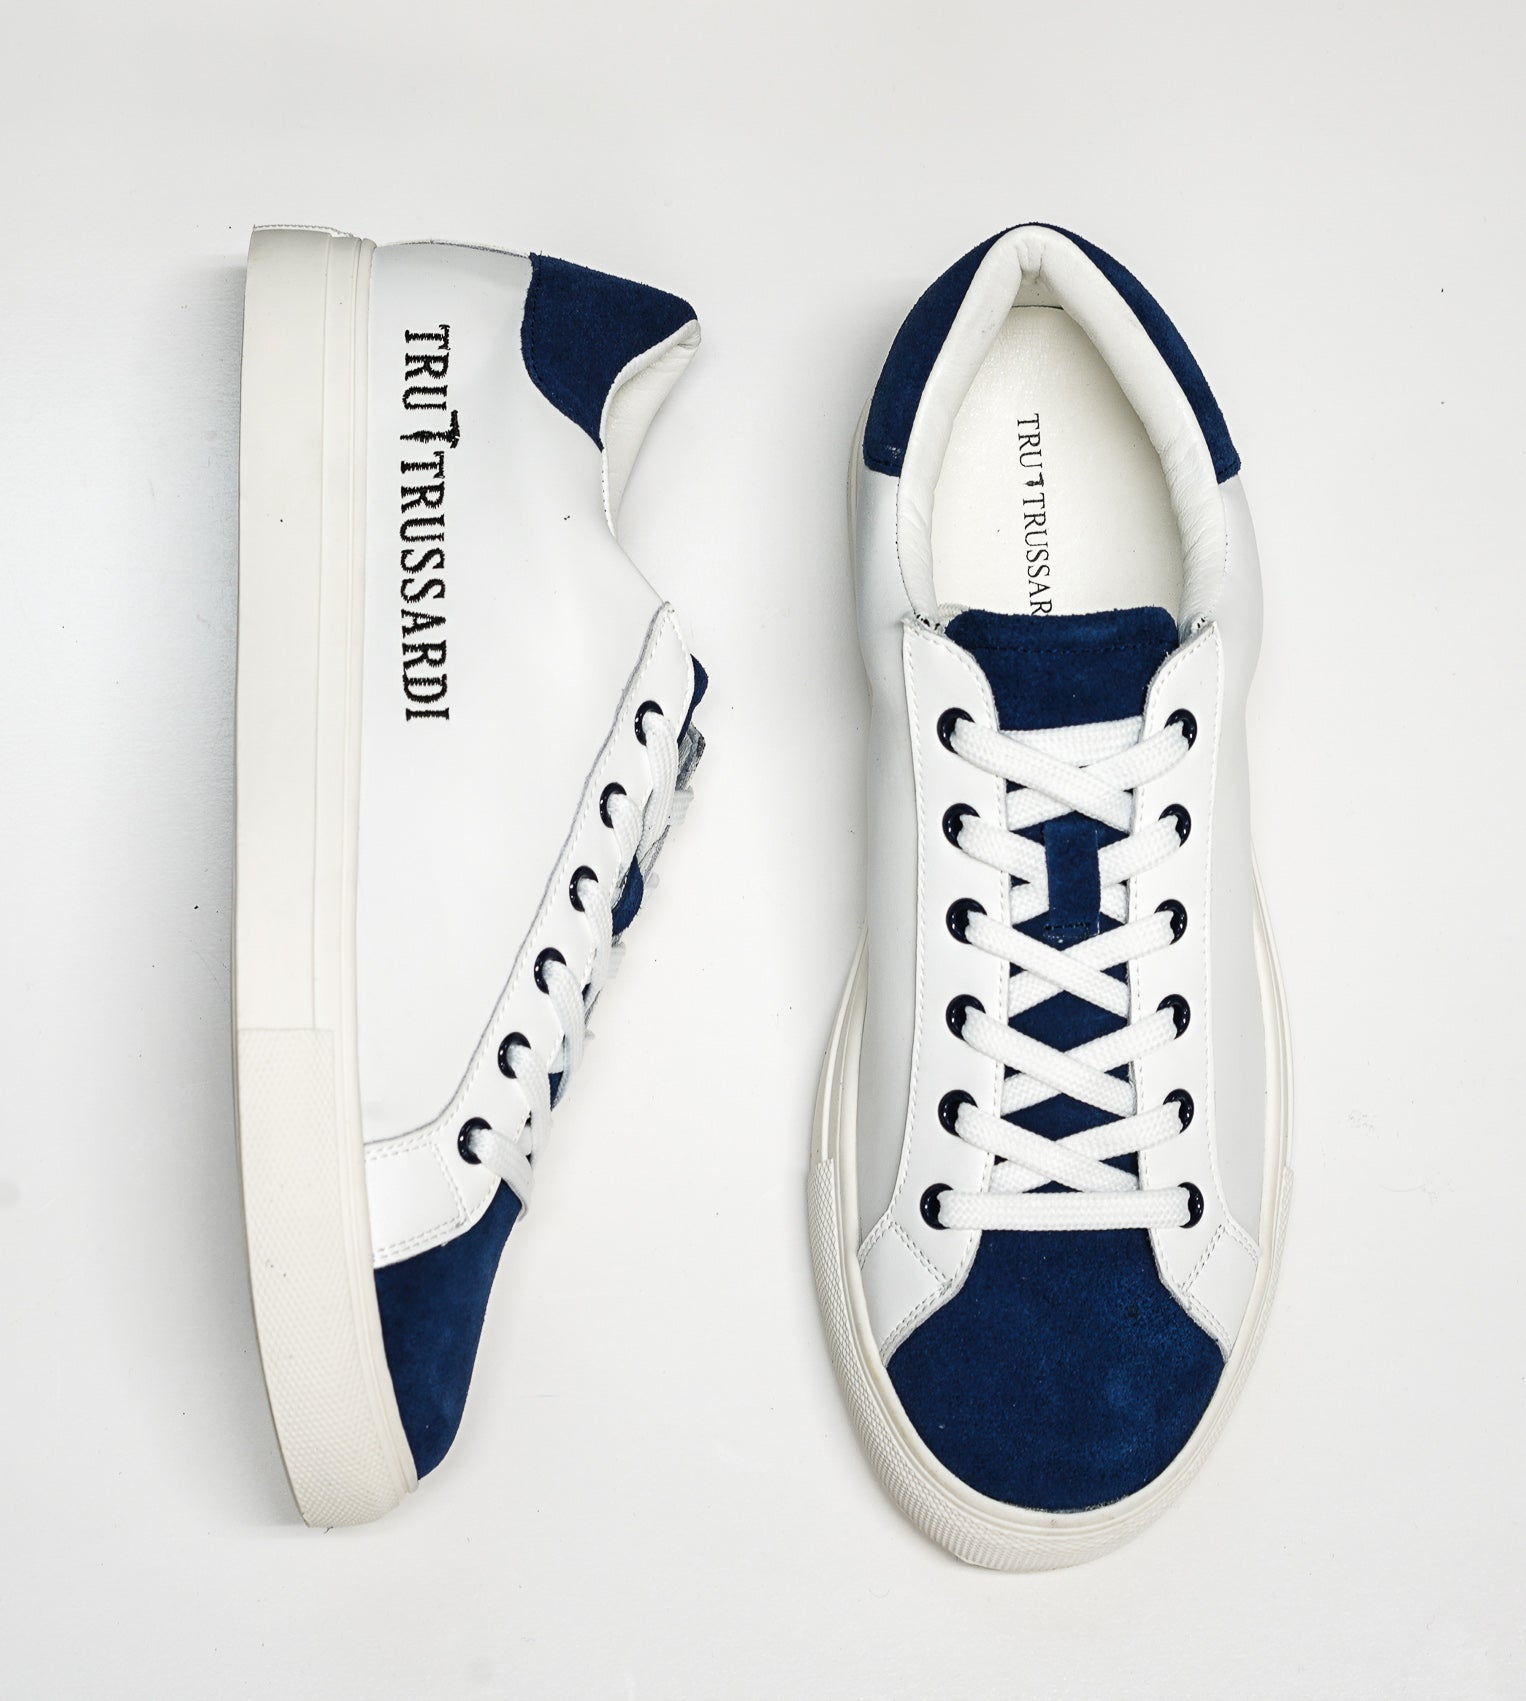 Trussardi Men's White & Blue Sneakers W656